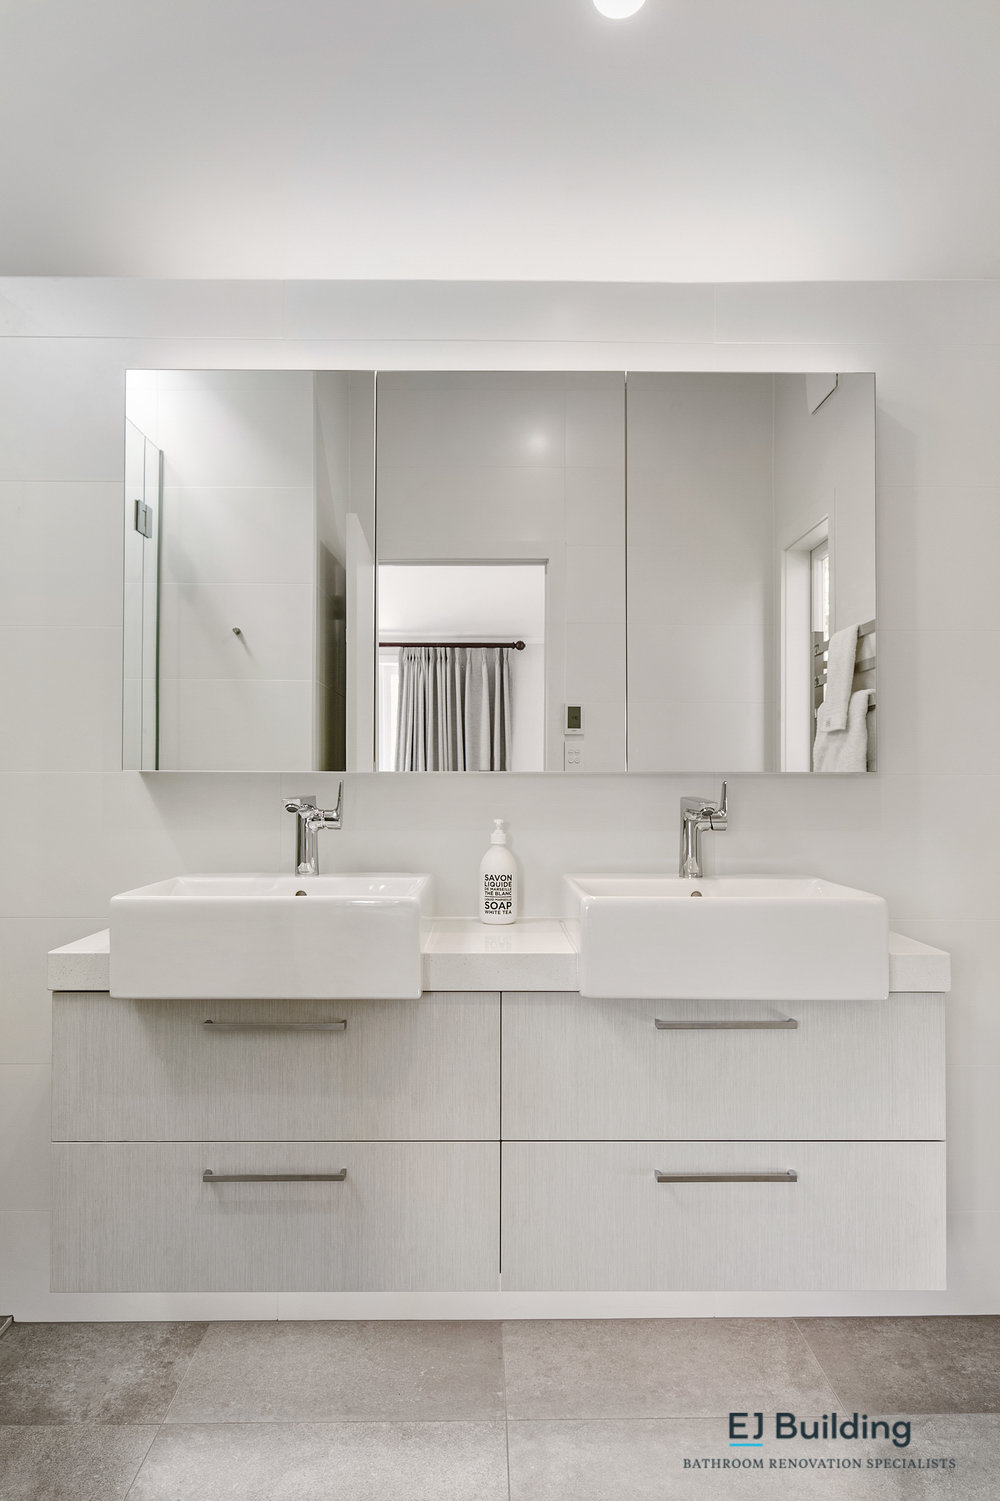 Ellerslie bathroom renovator Auckland. Wall hung vanity with LED lighting that turns on when you enter the ensuite. Mirror cabinet for additional bathroom storage. Under tiler floor heating for the new ensuite. Bathroom Renovation by E J Building Bathroom renovators In Auckland.